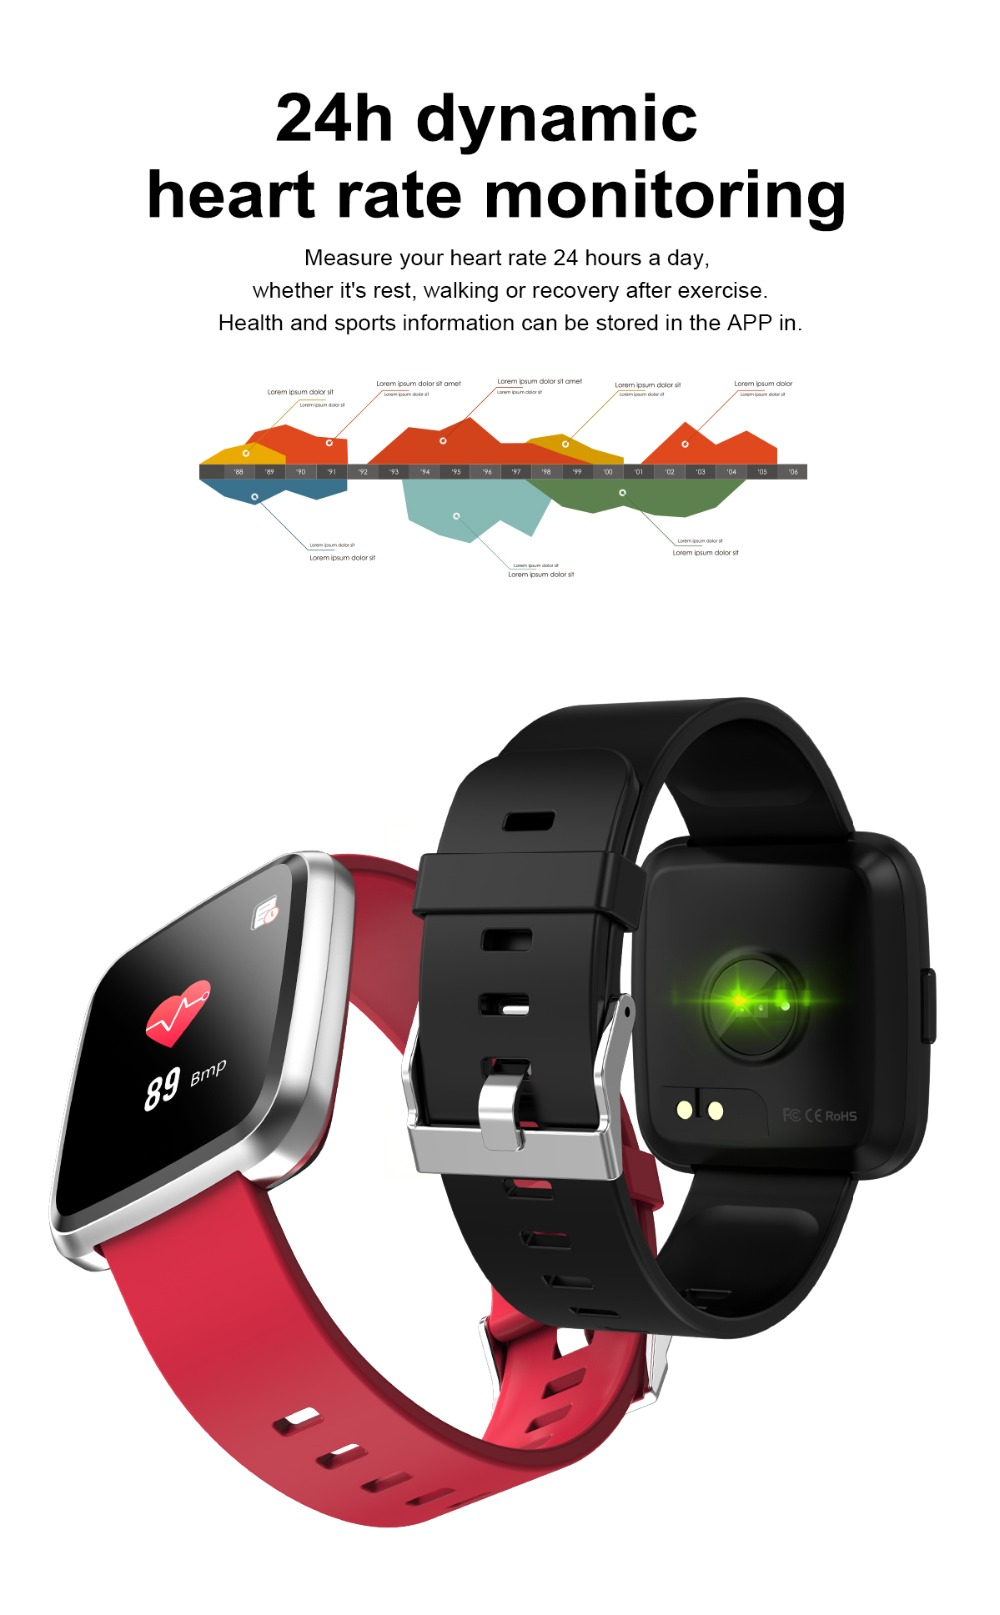 US $44 55 7% OFF|smartband 2019 Smart Bracelet Heart Rate Monitor VK skype  FB info push Fitness Bracelet Clock Full Touch Screen smartwatch Band-in